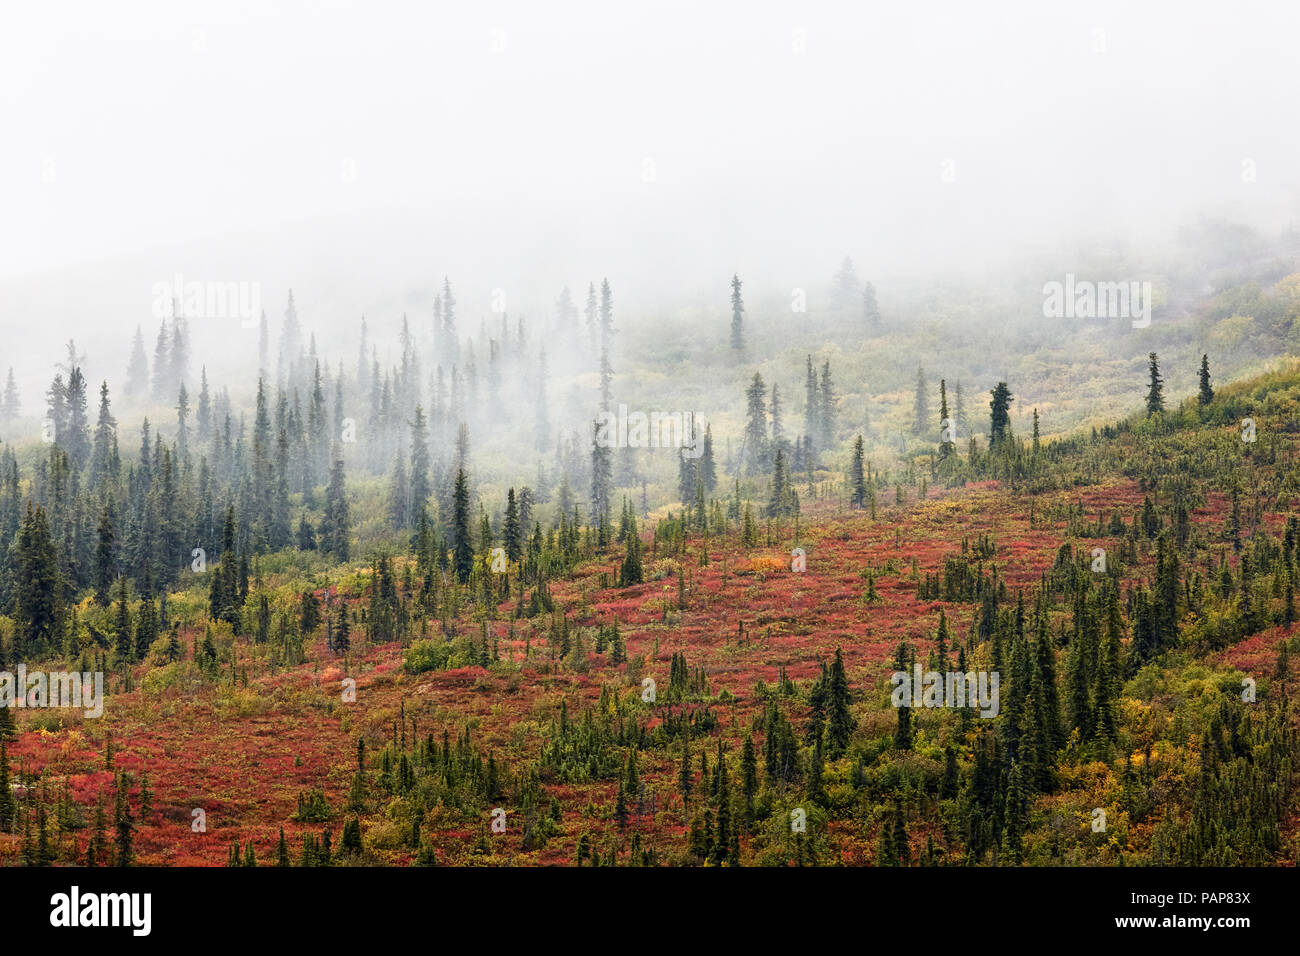 USA, Alaska, autumn in Denali National Park - Stock Image